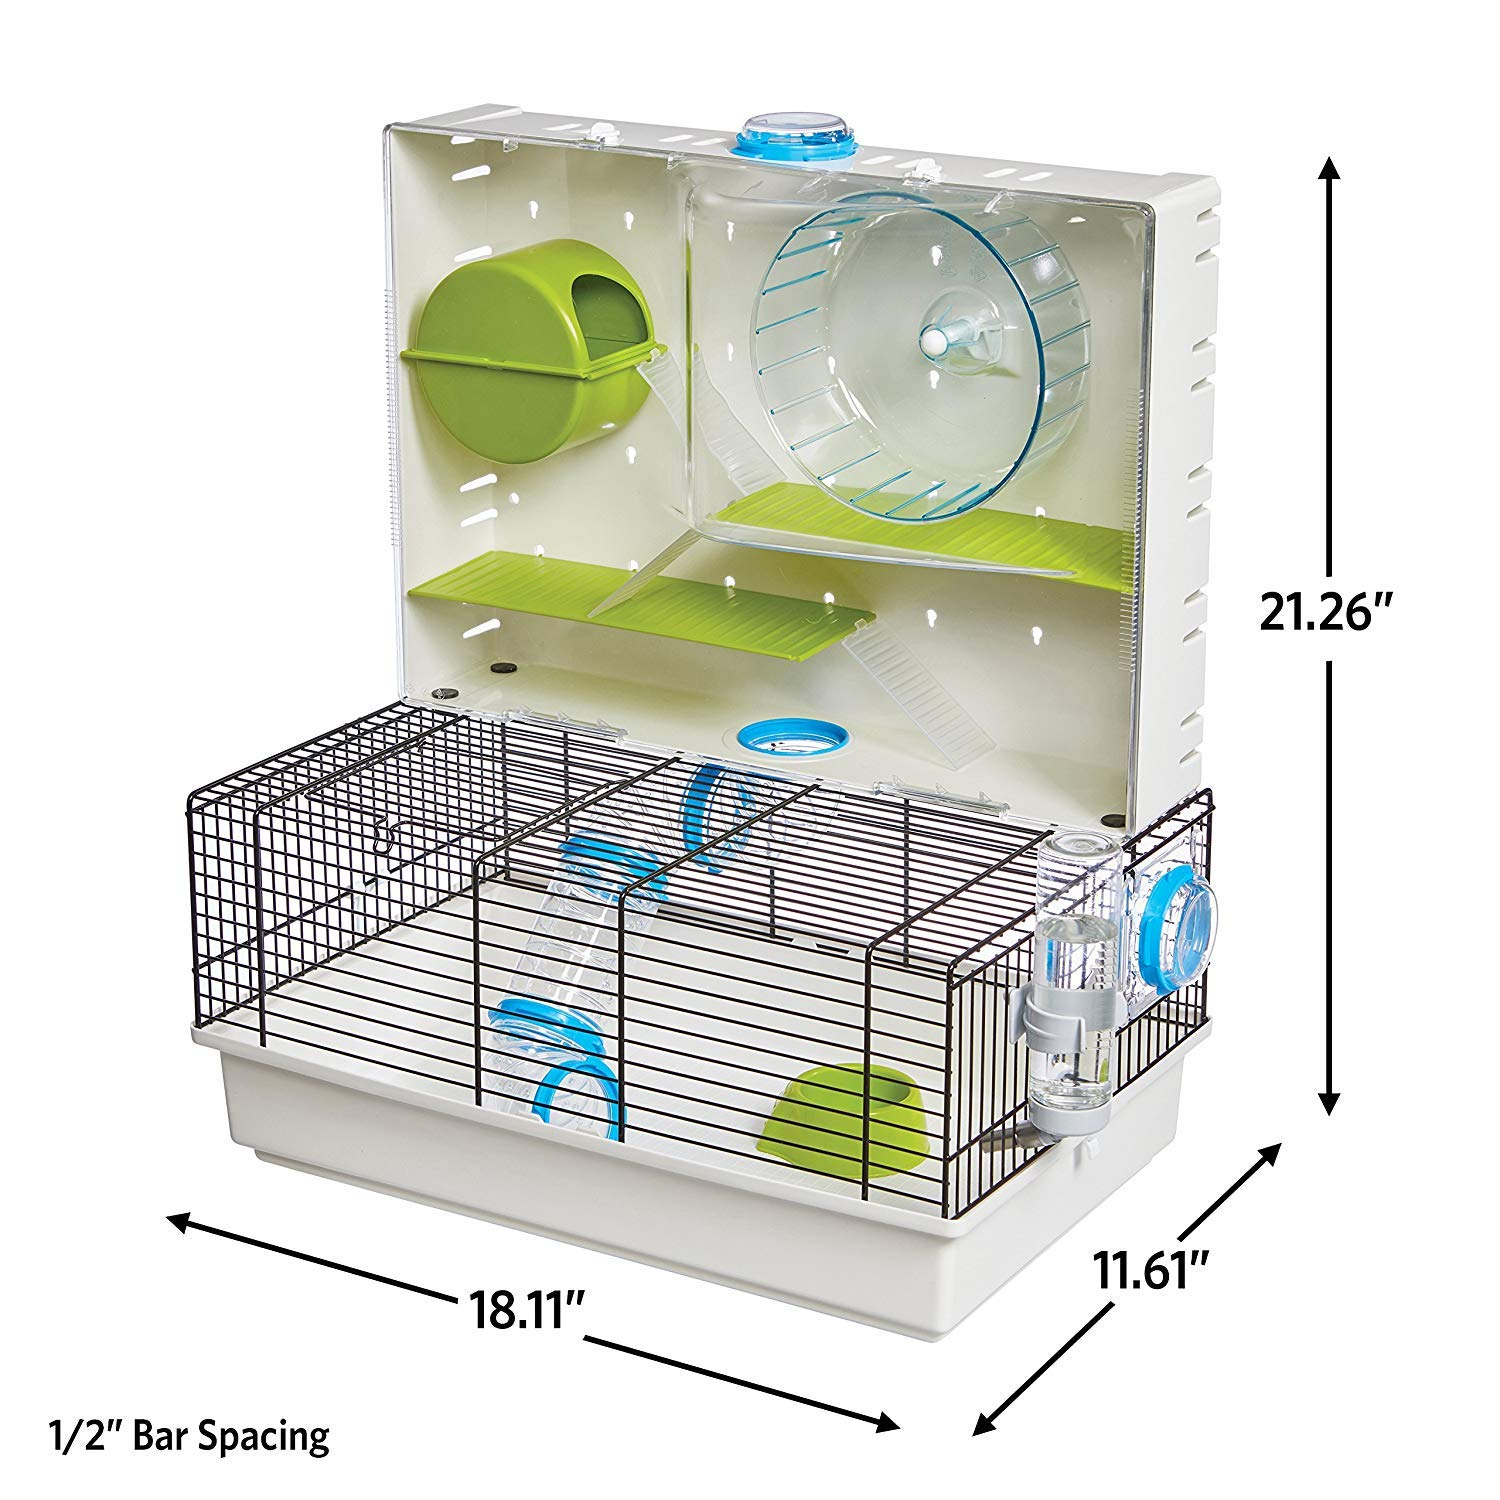 MidWest Homes for Pets Hamster Cage | Awesome Arcade Hamster Home | 18.11'' x 11.61'' x 21.26'' by MidWest Homes for Pets (Image #2)